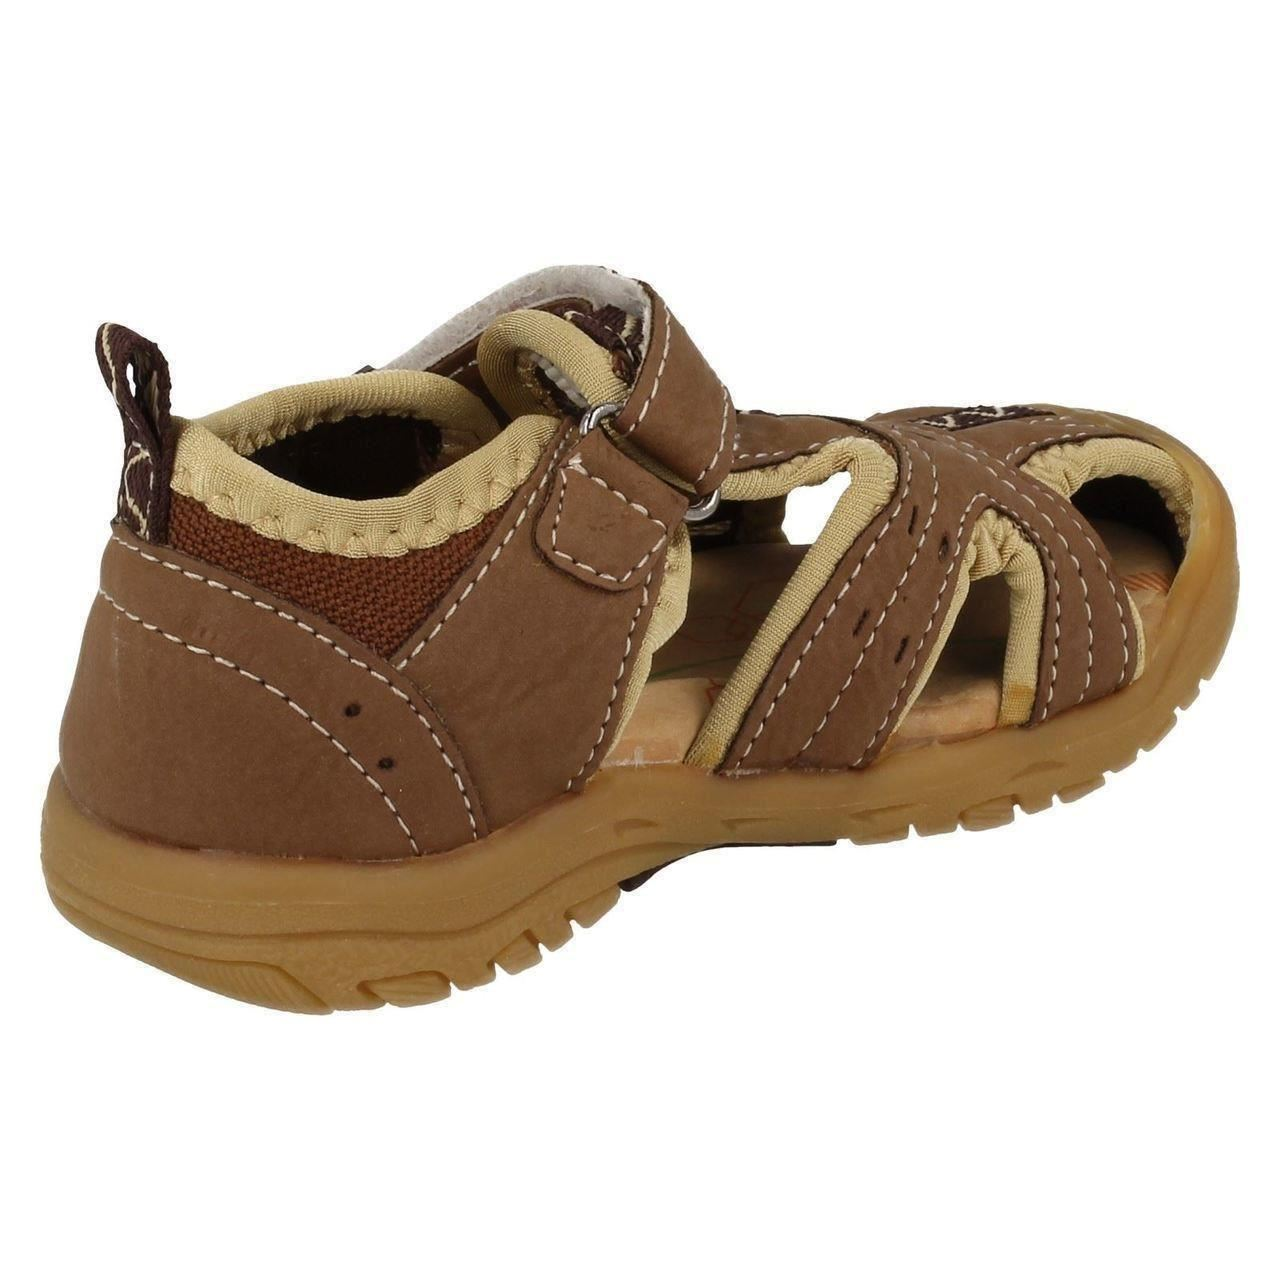 JCDees Boys Closed Toe Casual Sandals